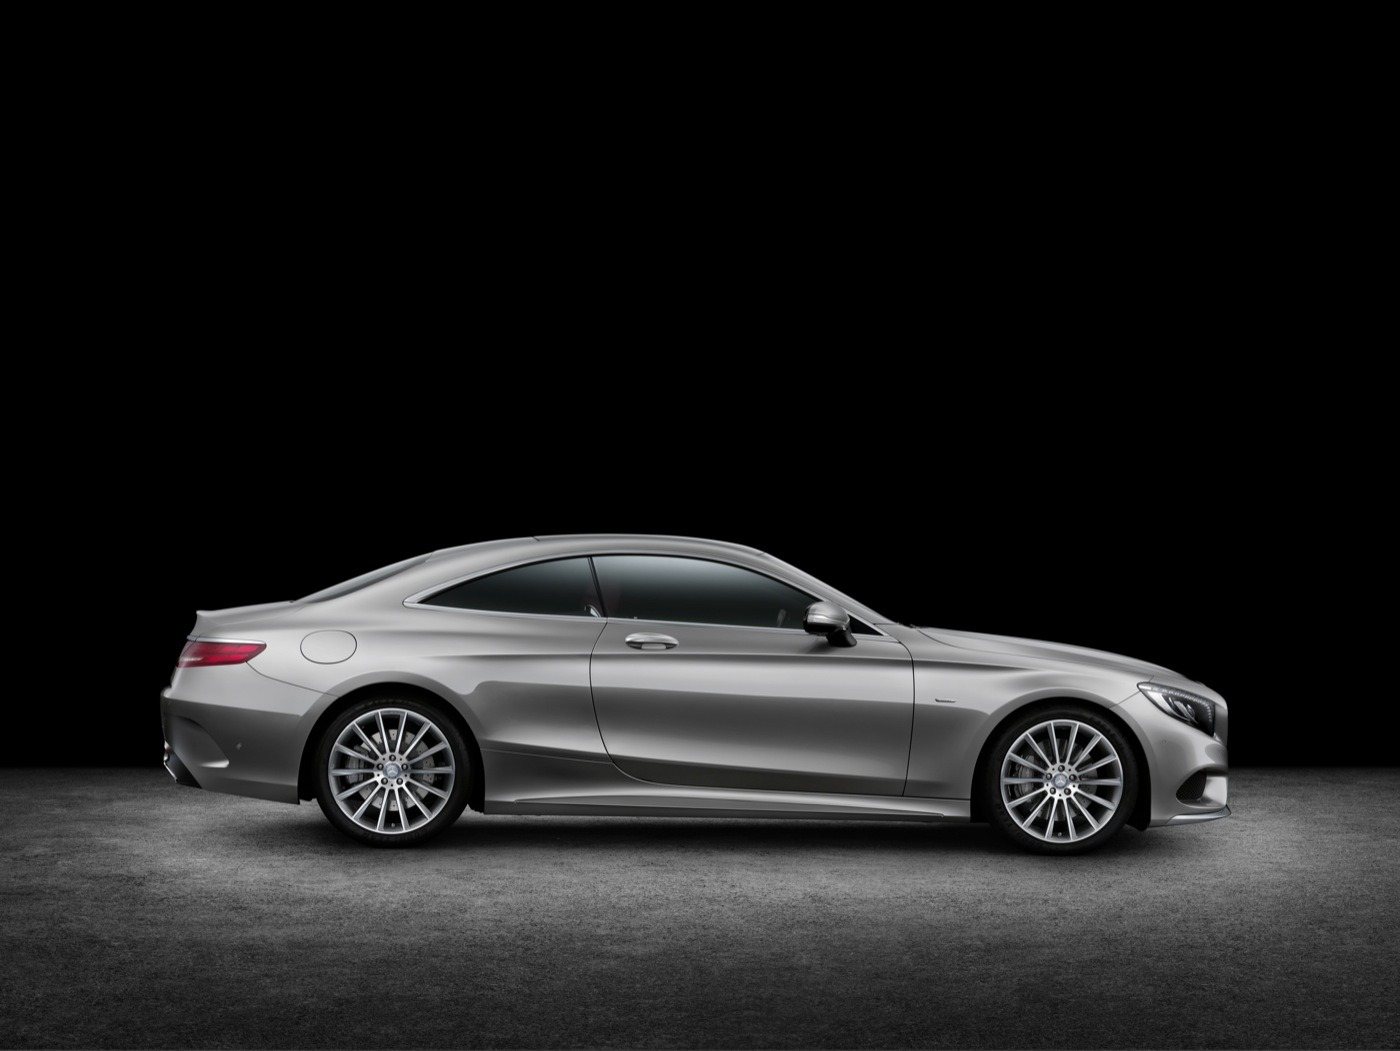 2019 Mercedes Benz S Class Coupe photo - 5